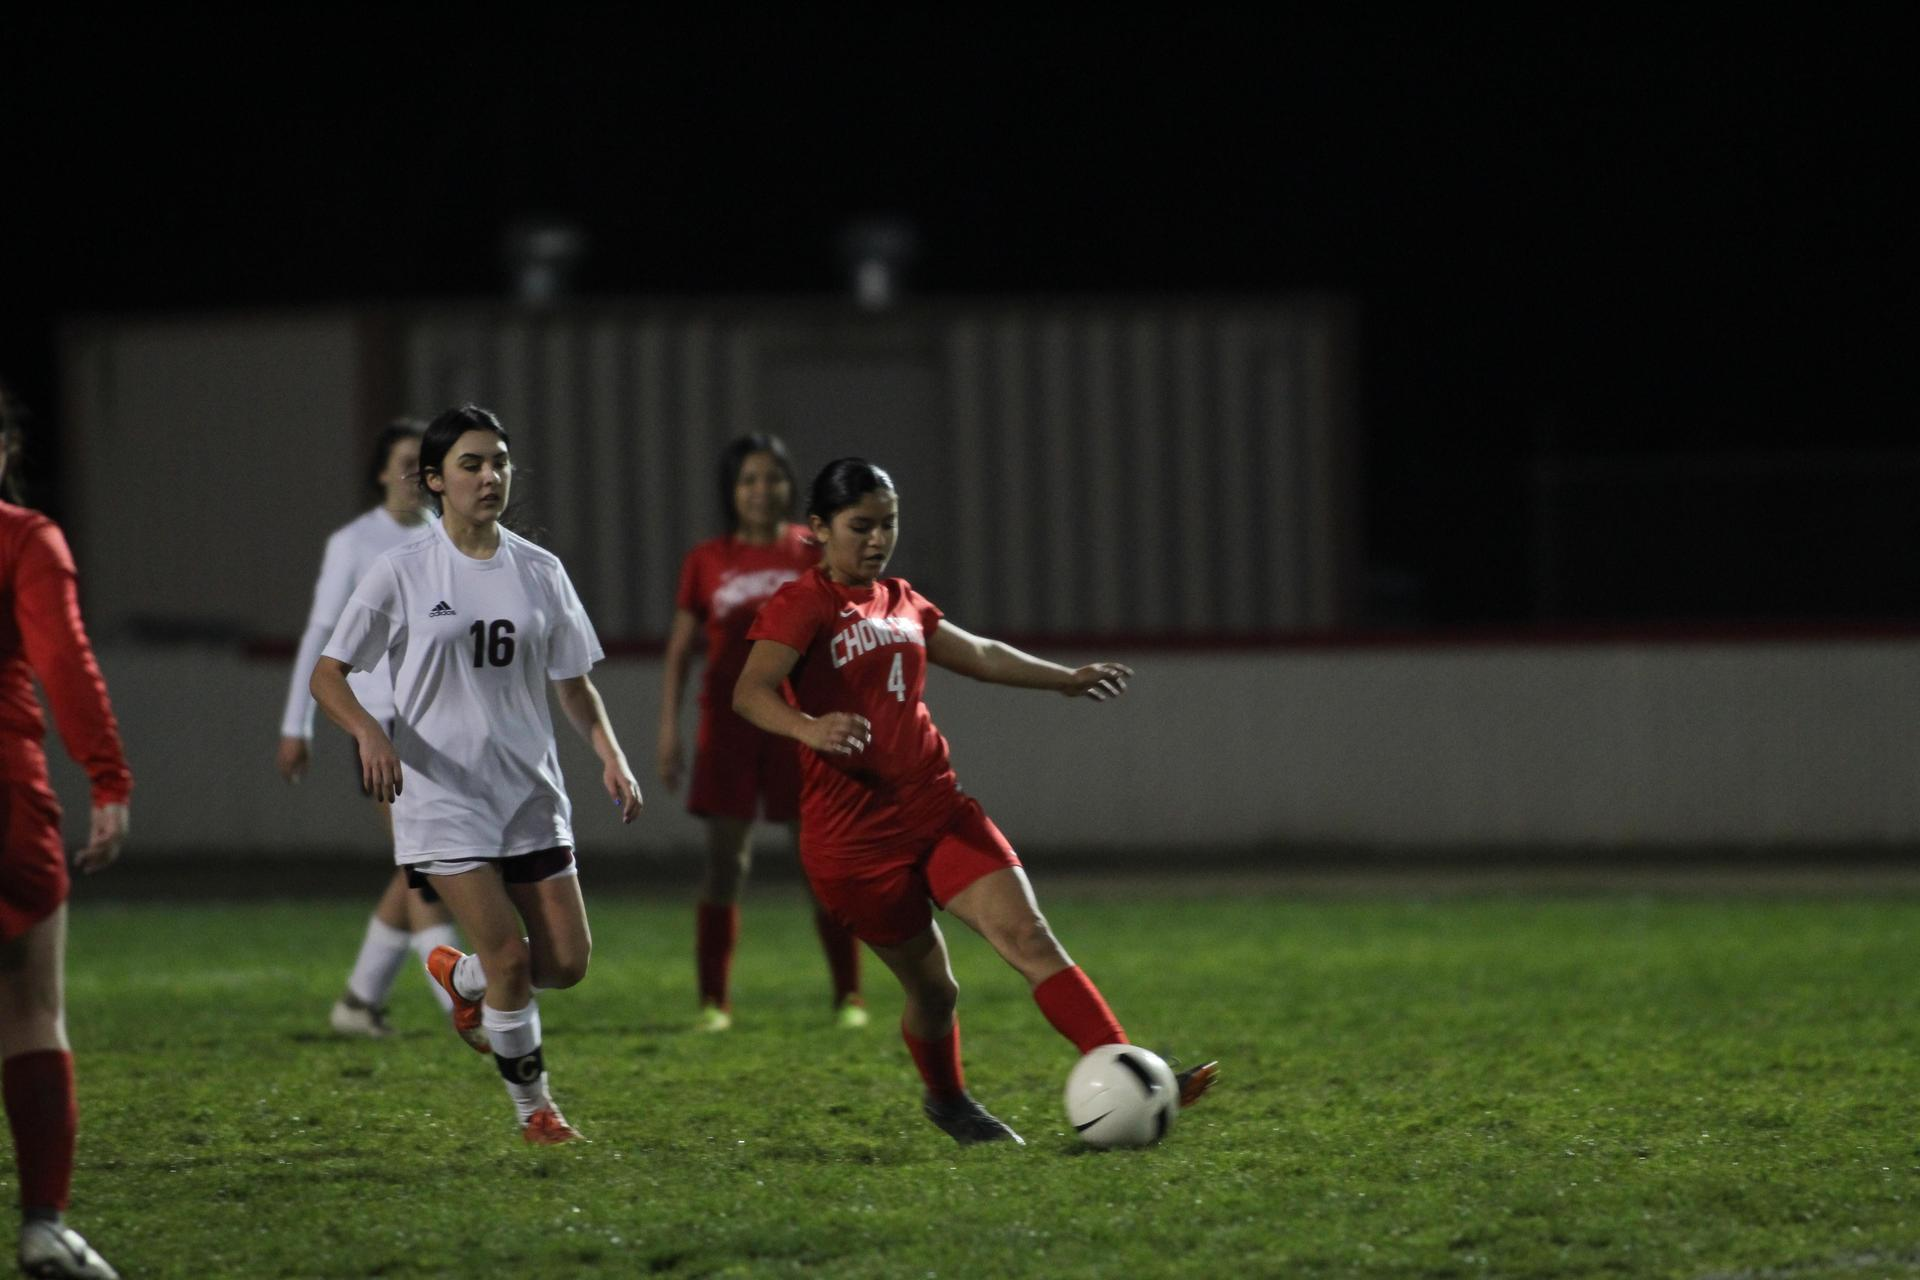 Varsity girls playing soccer against Sierra